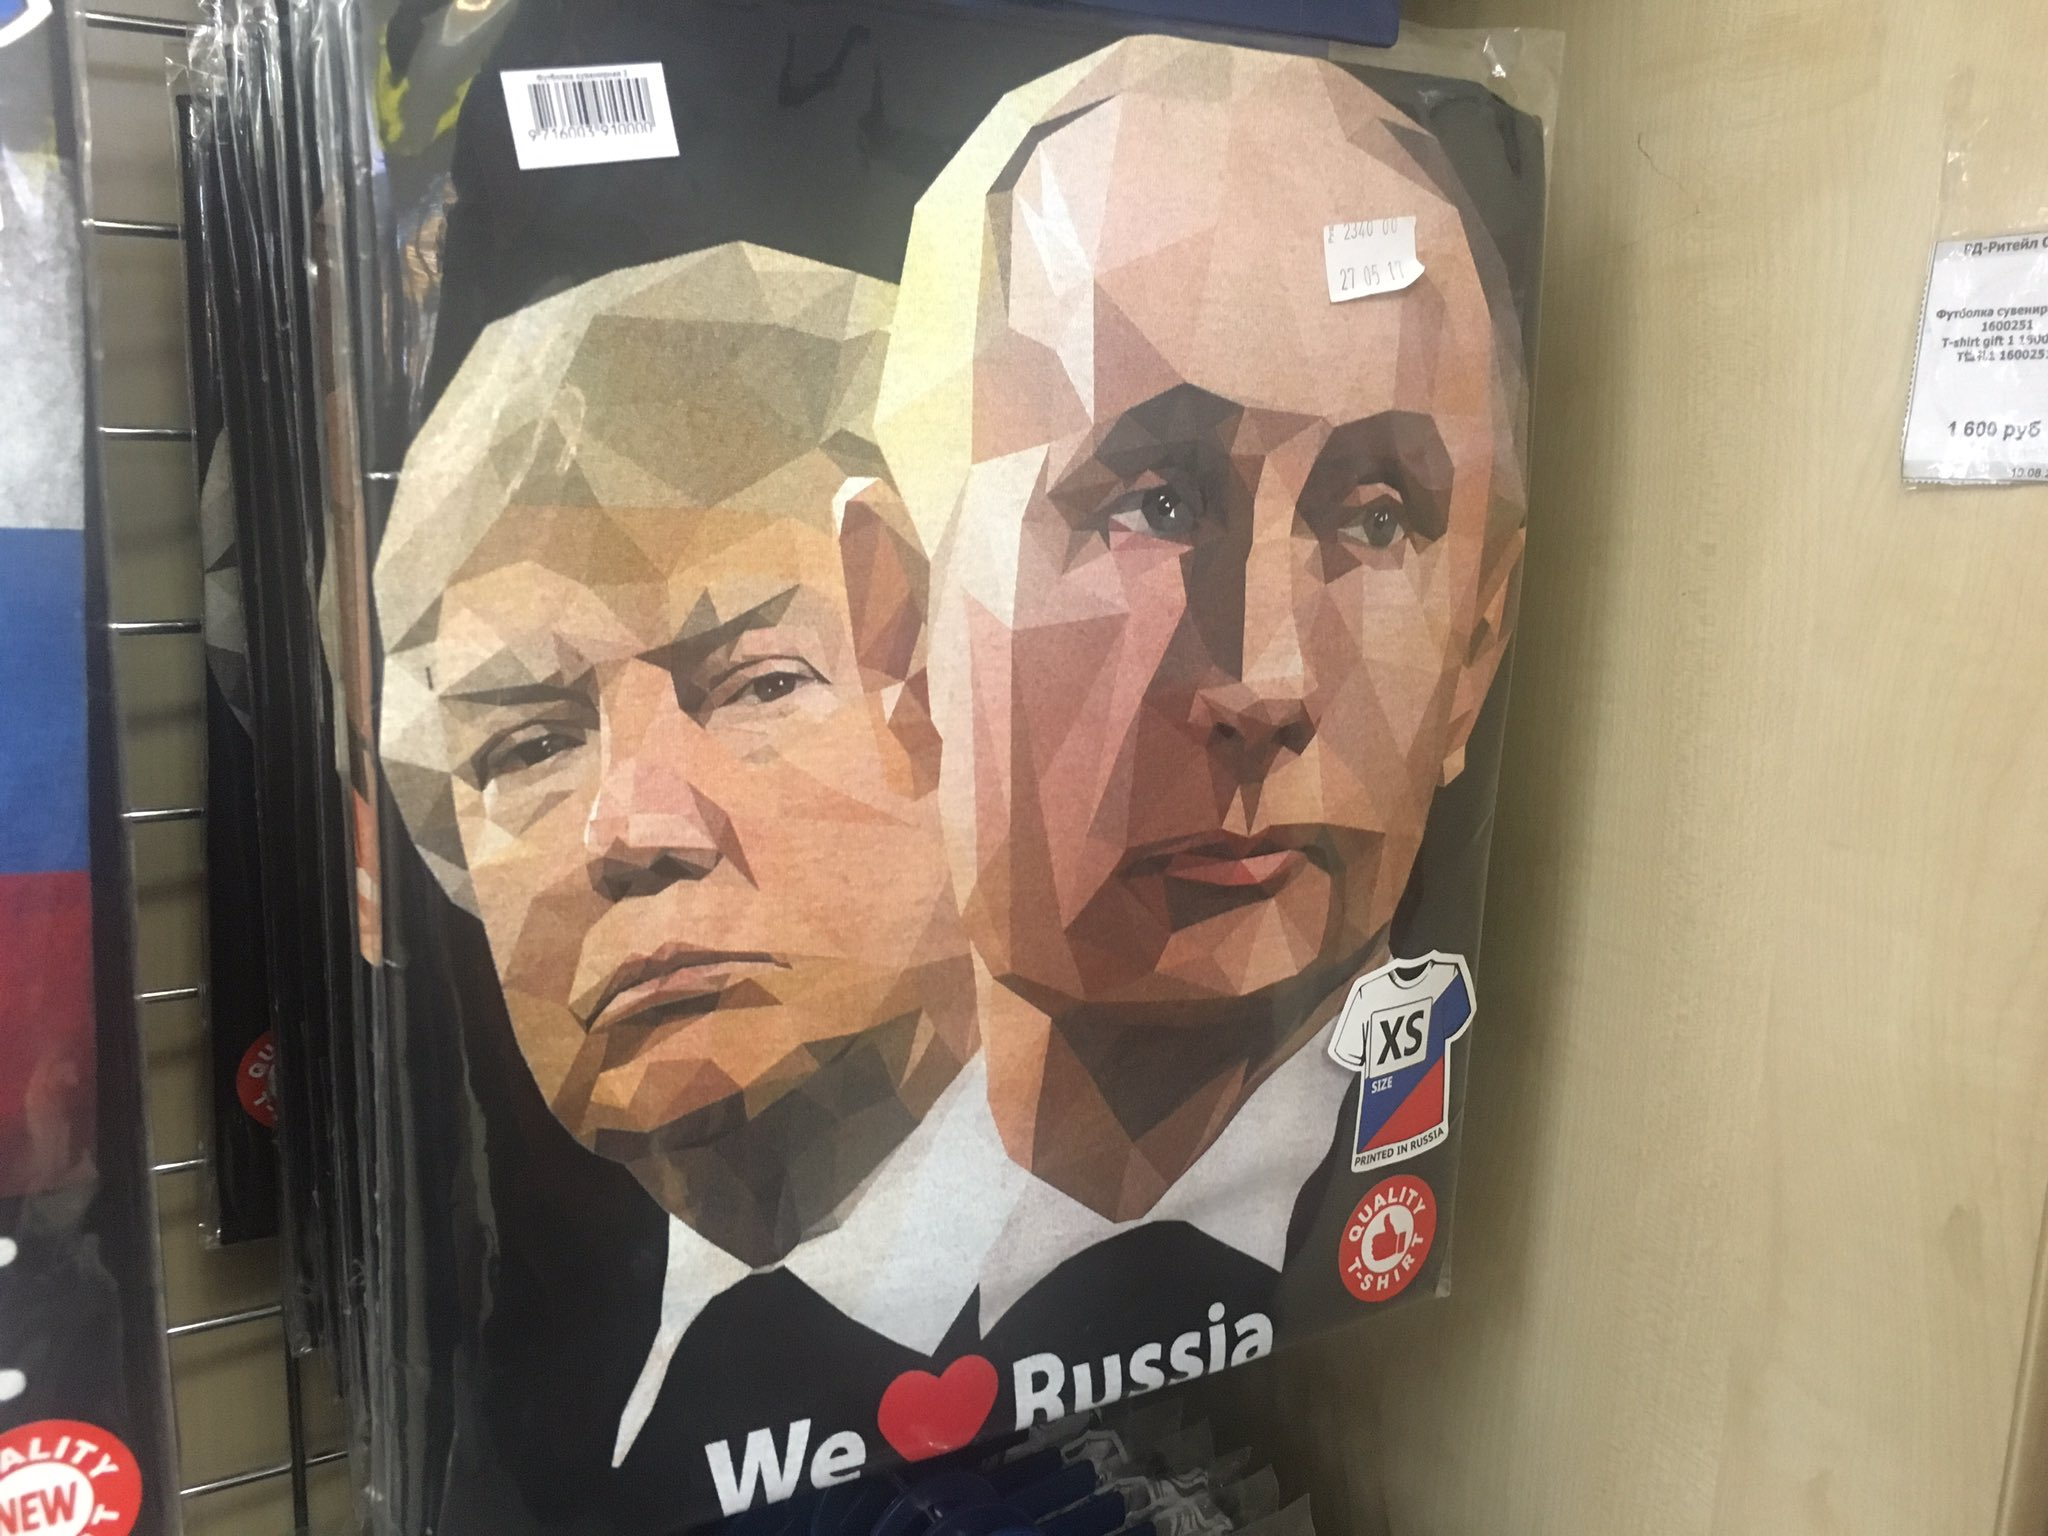 An American president becomes a Russian souvenir. Trump-Putin T-shirts on sale today at Moscow airport. https://t.co/8ADDKj8V3l